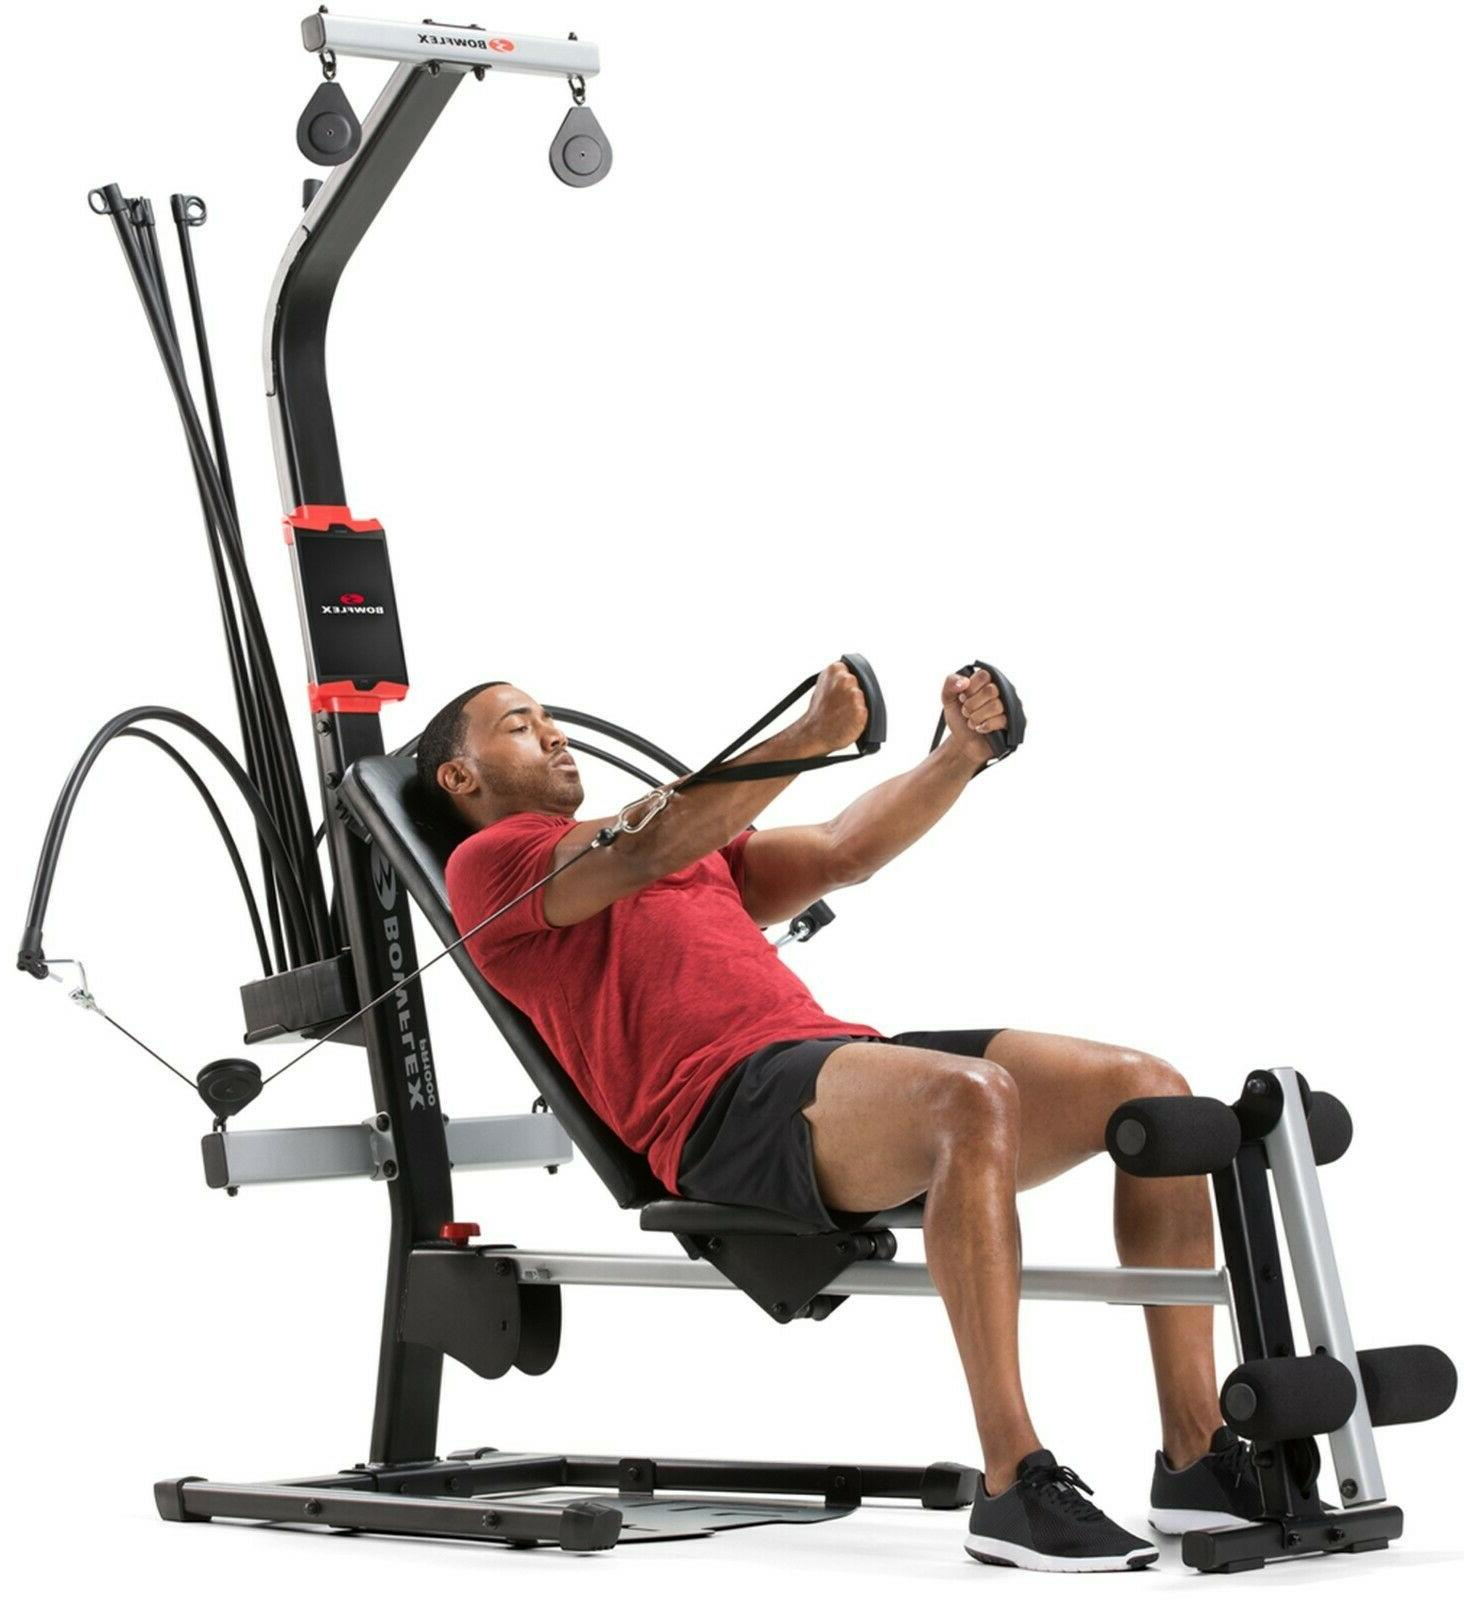 Bowflex 1000 Gym 25+ exercises and lbs. power rod resistance